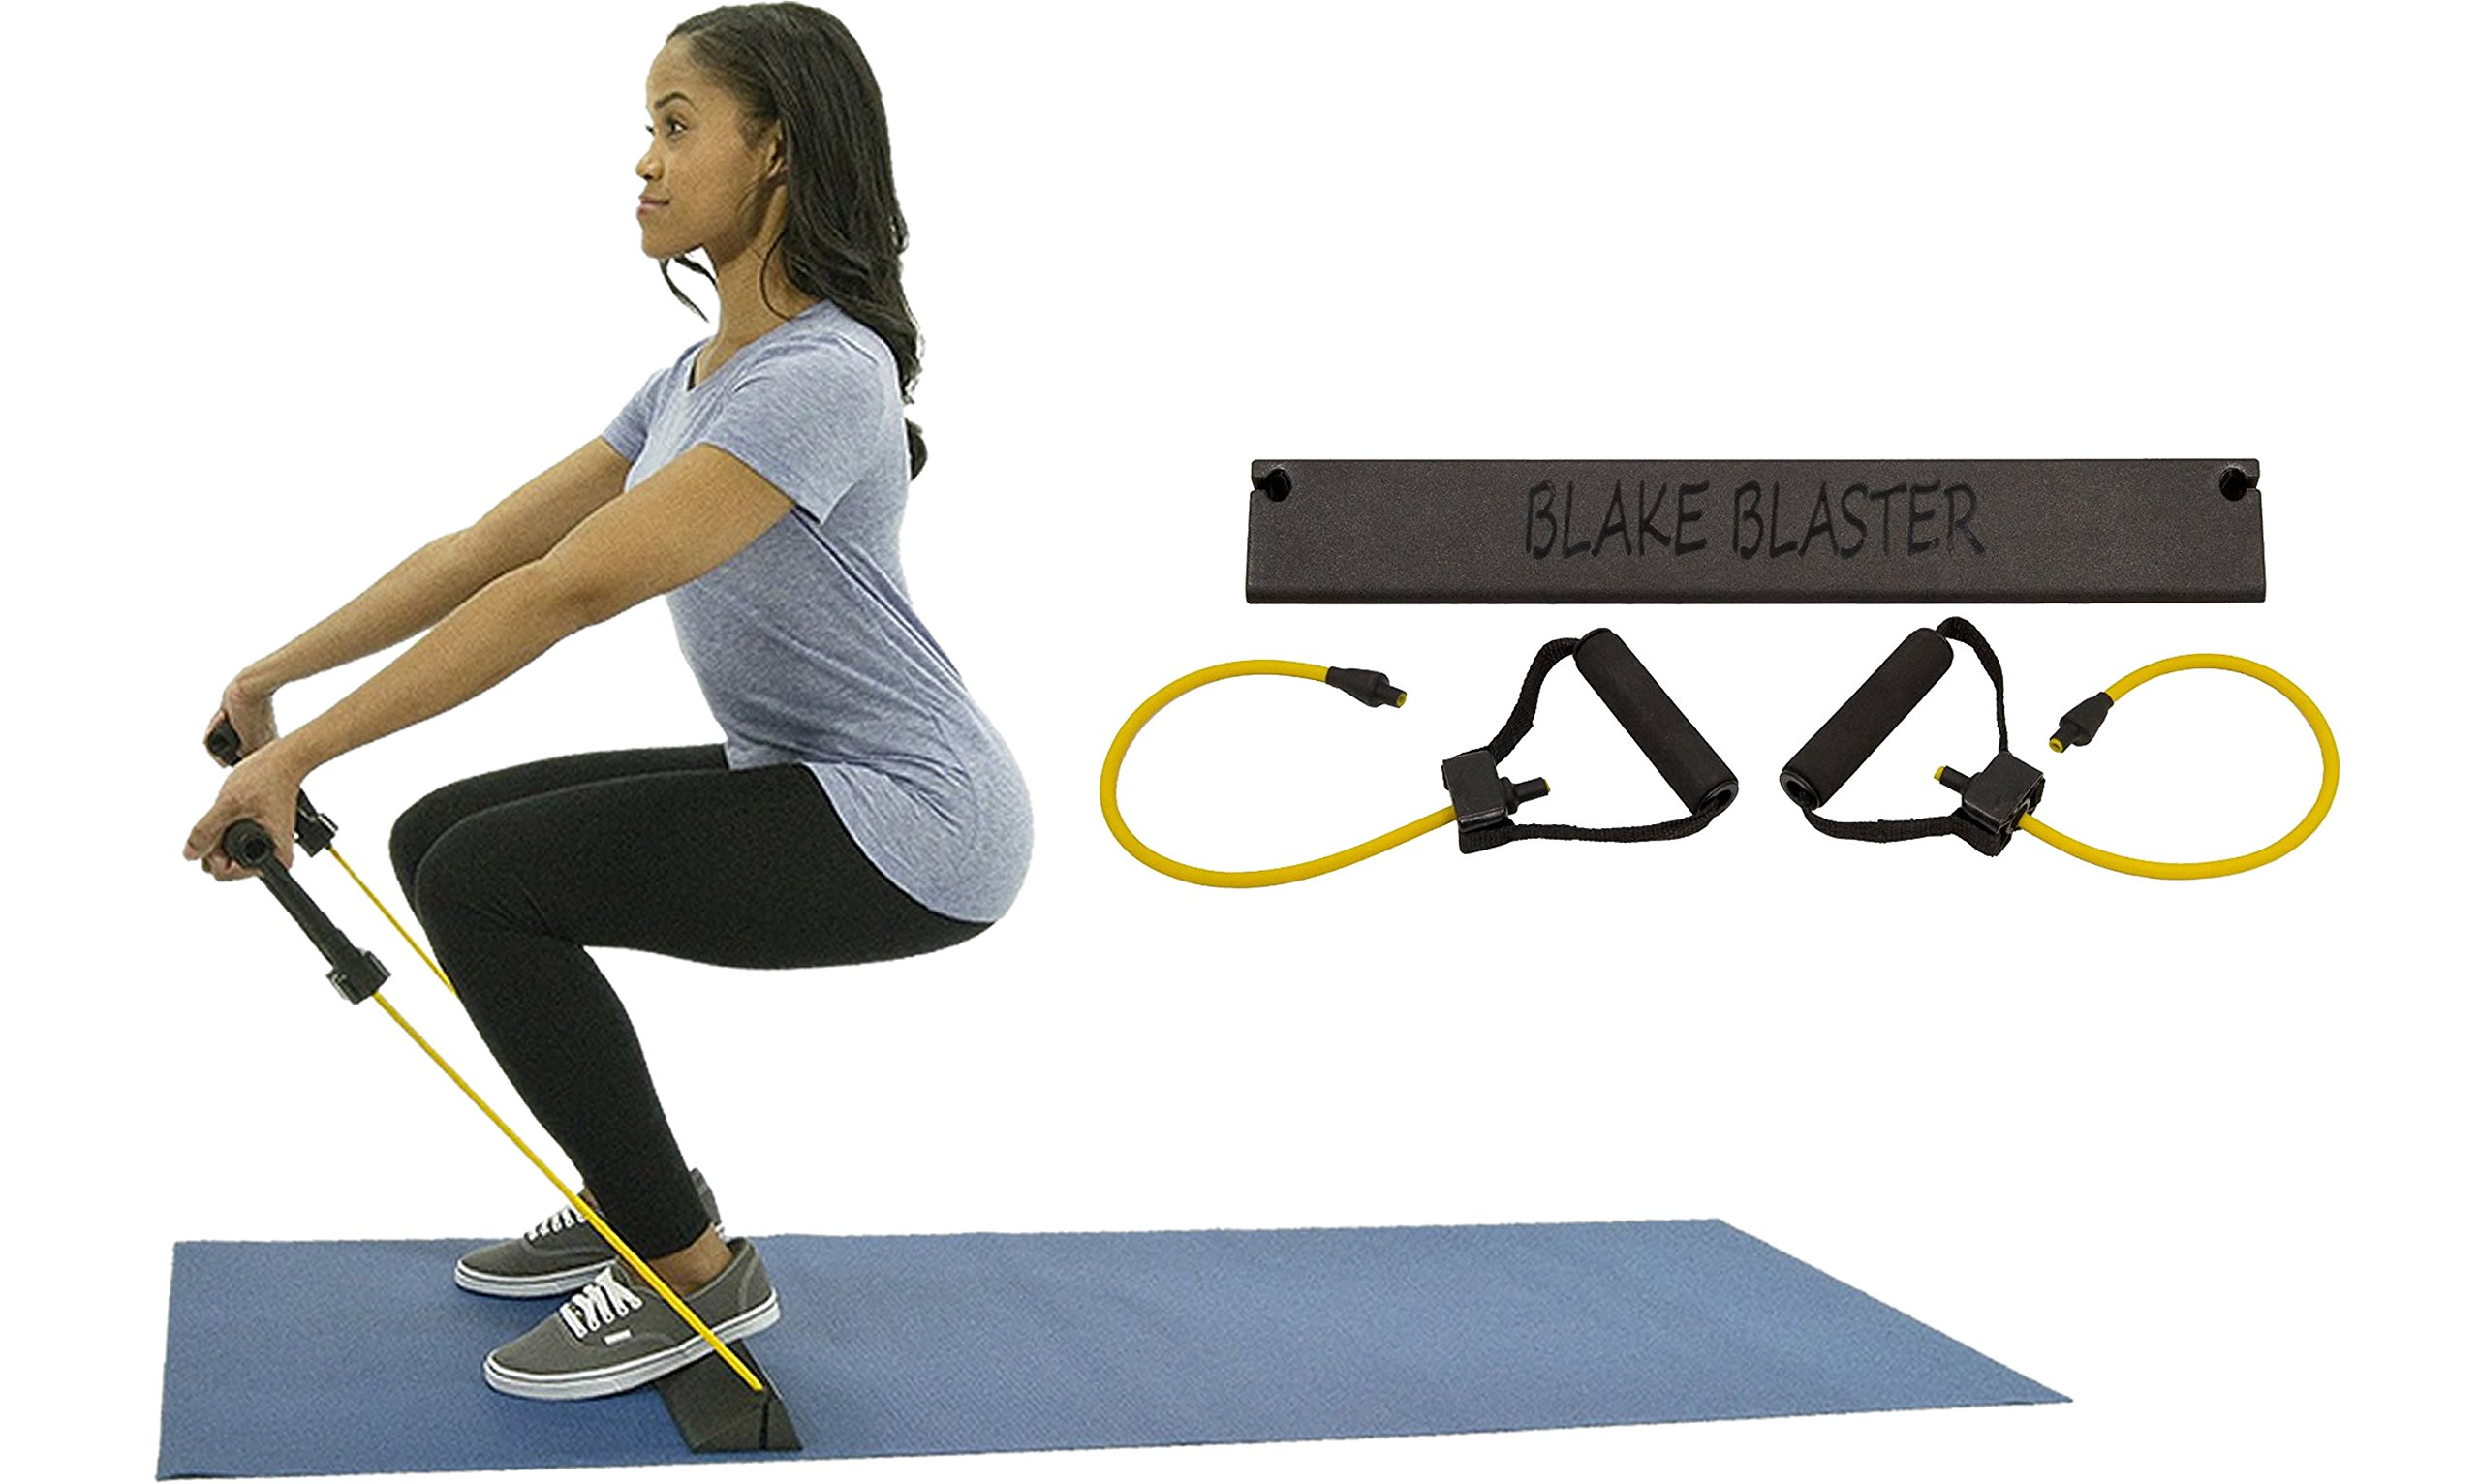 Blake Blaster - Revolutionary Squat Trainer and Portable Full Body Home Gym by Blake Blaster